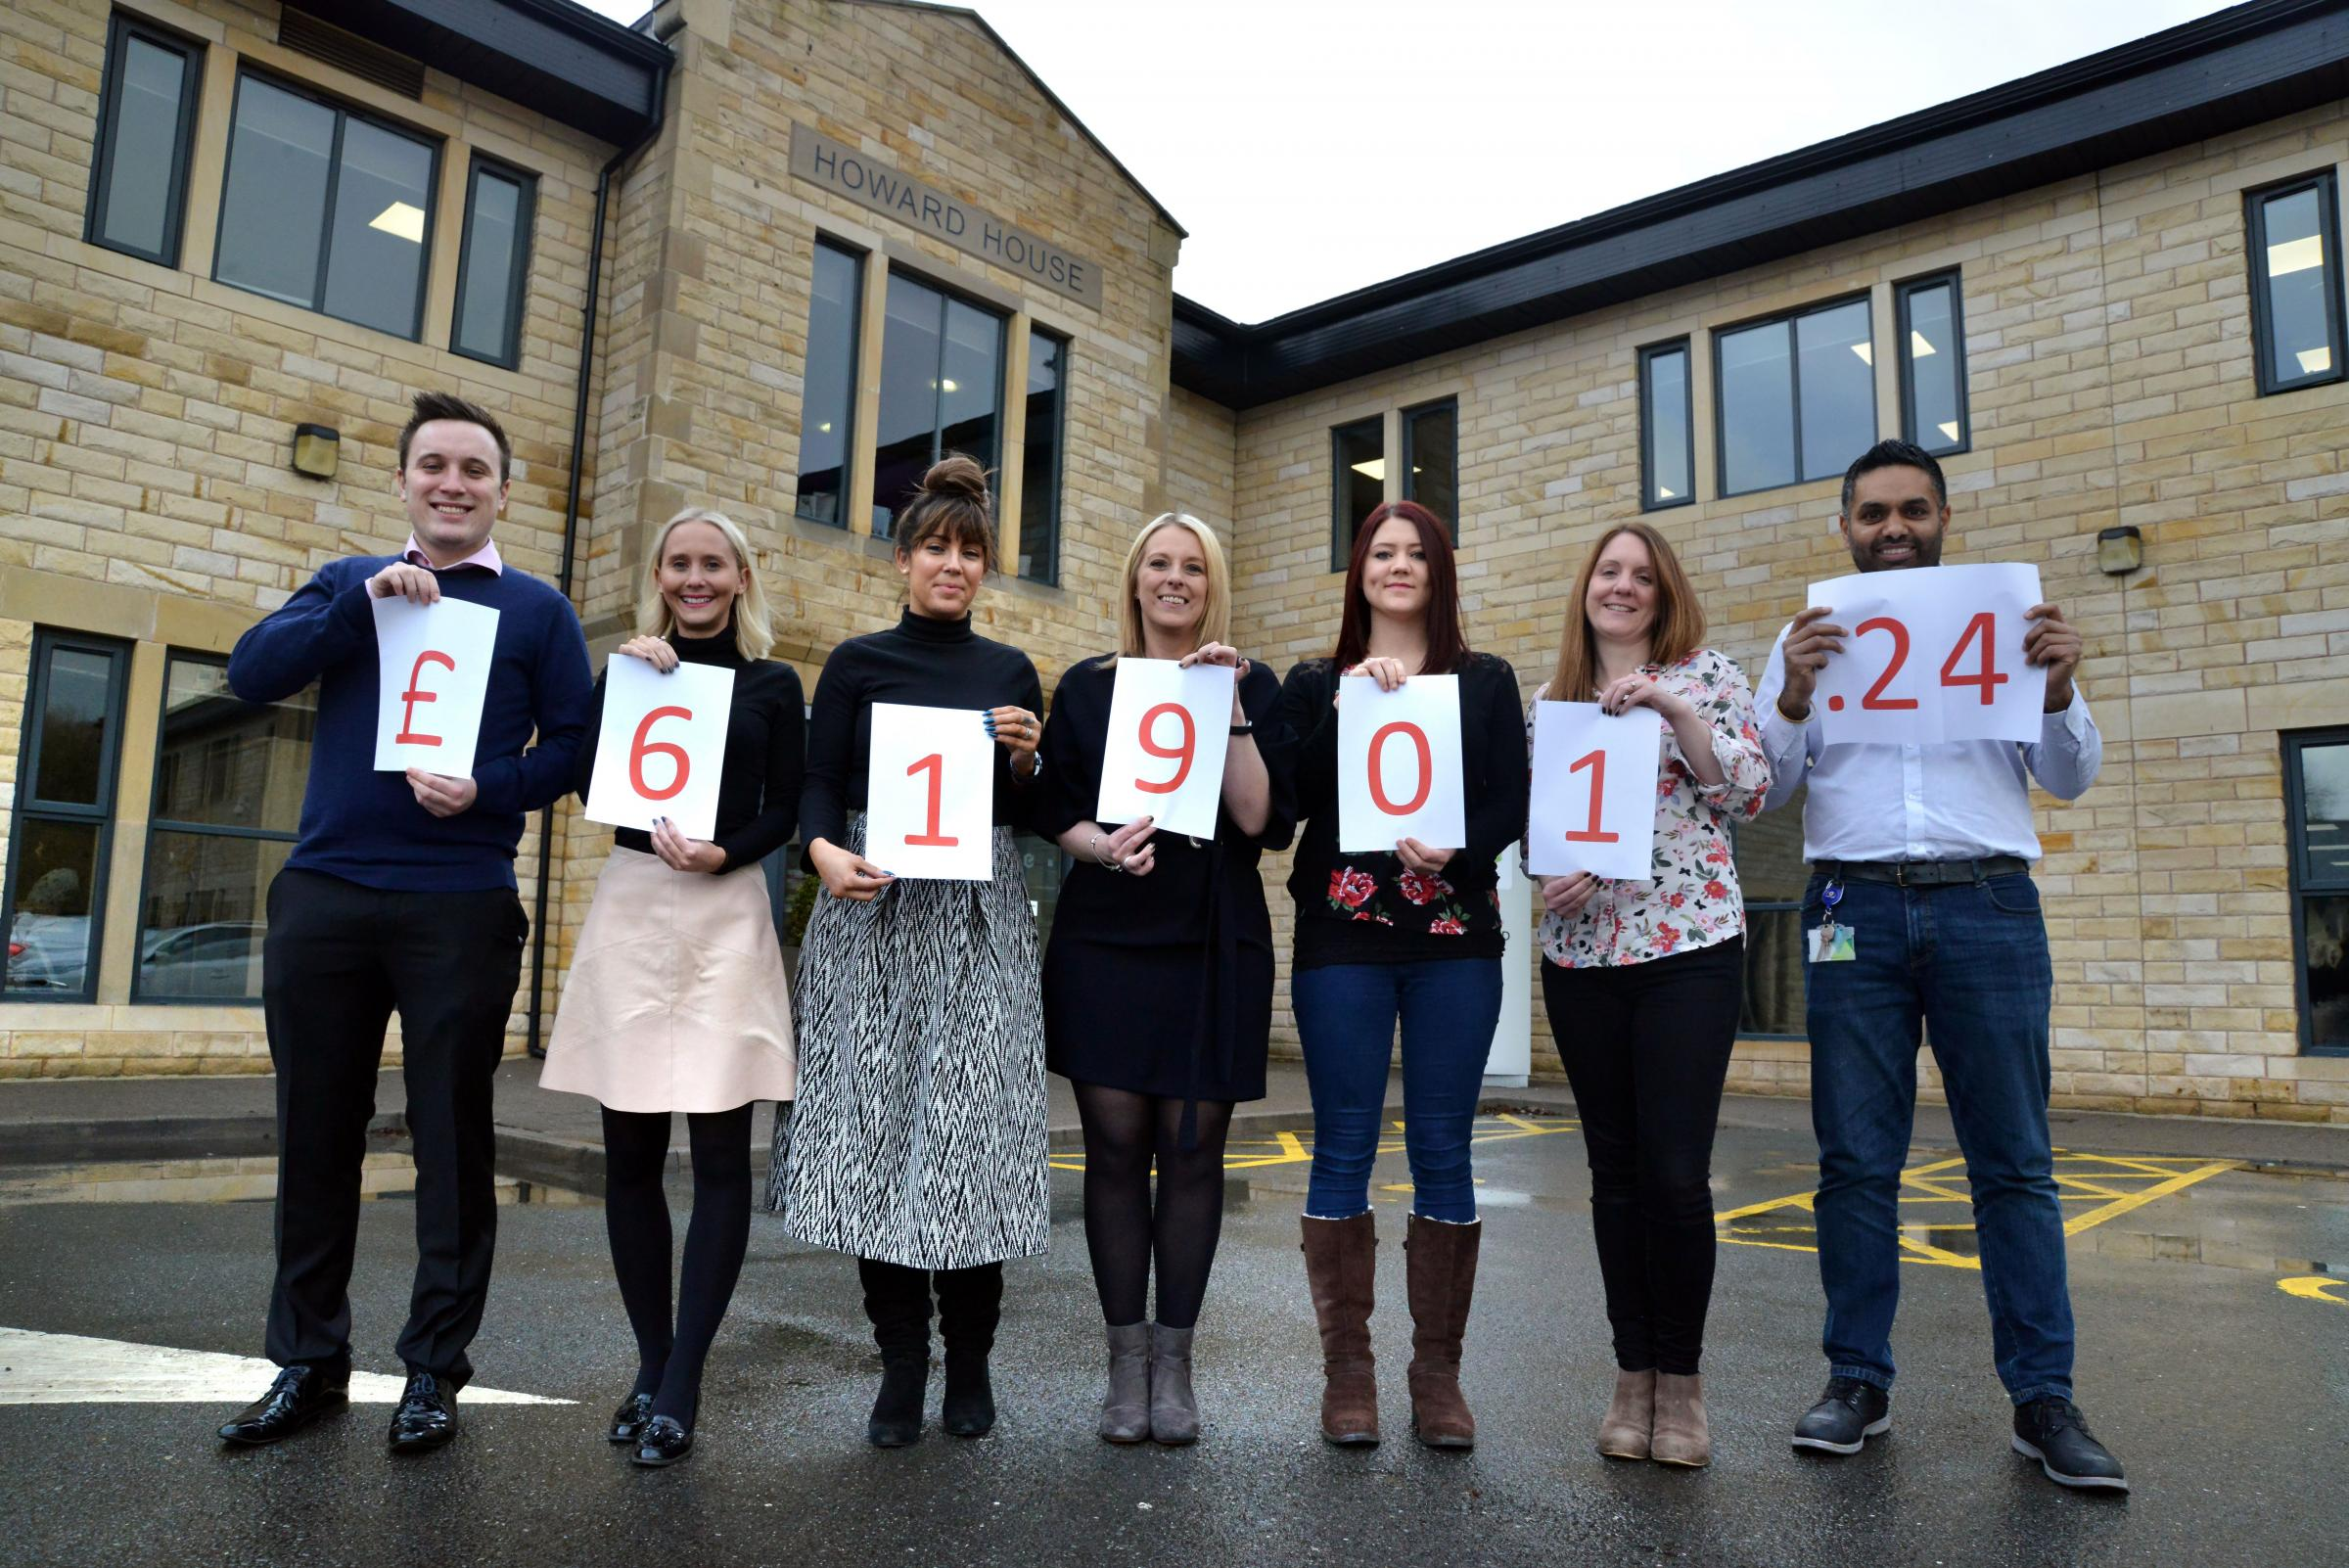 Bingley based Emerald Publishing Group marked its 50th anniversary by raising more than £60,000 for a heart charity over the year....